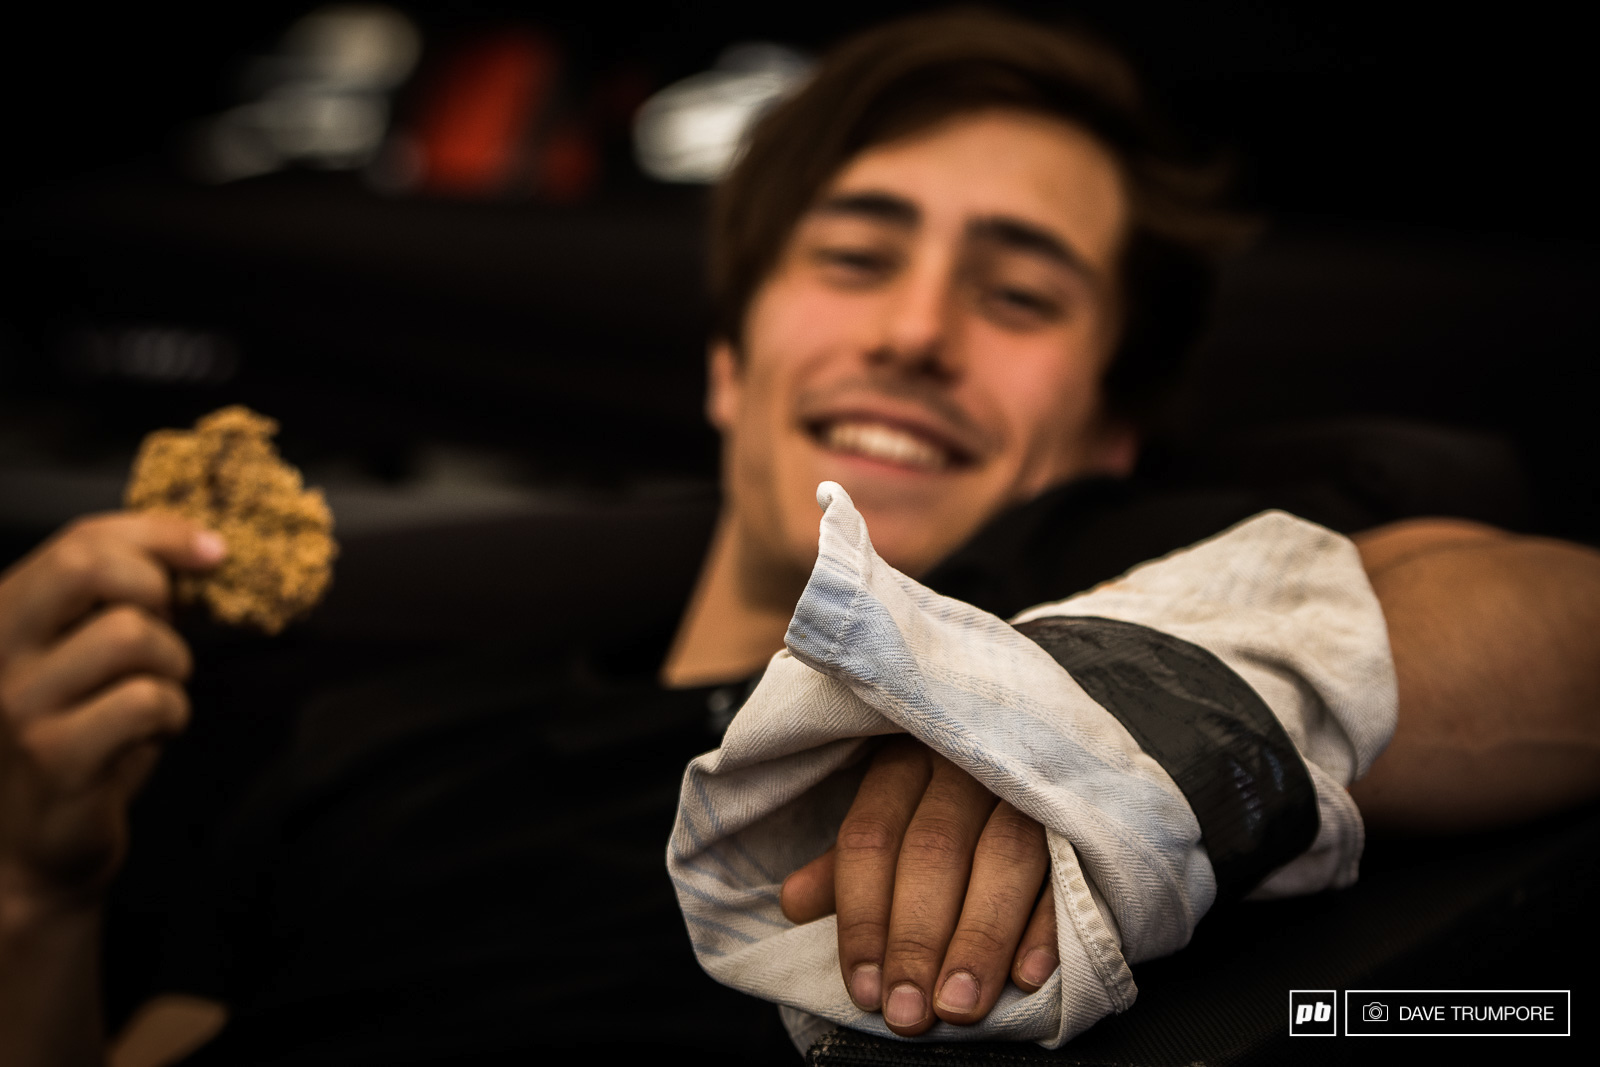 Gaetan Vige smashed his hand pretty hard and his weekend might just be over.